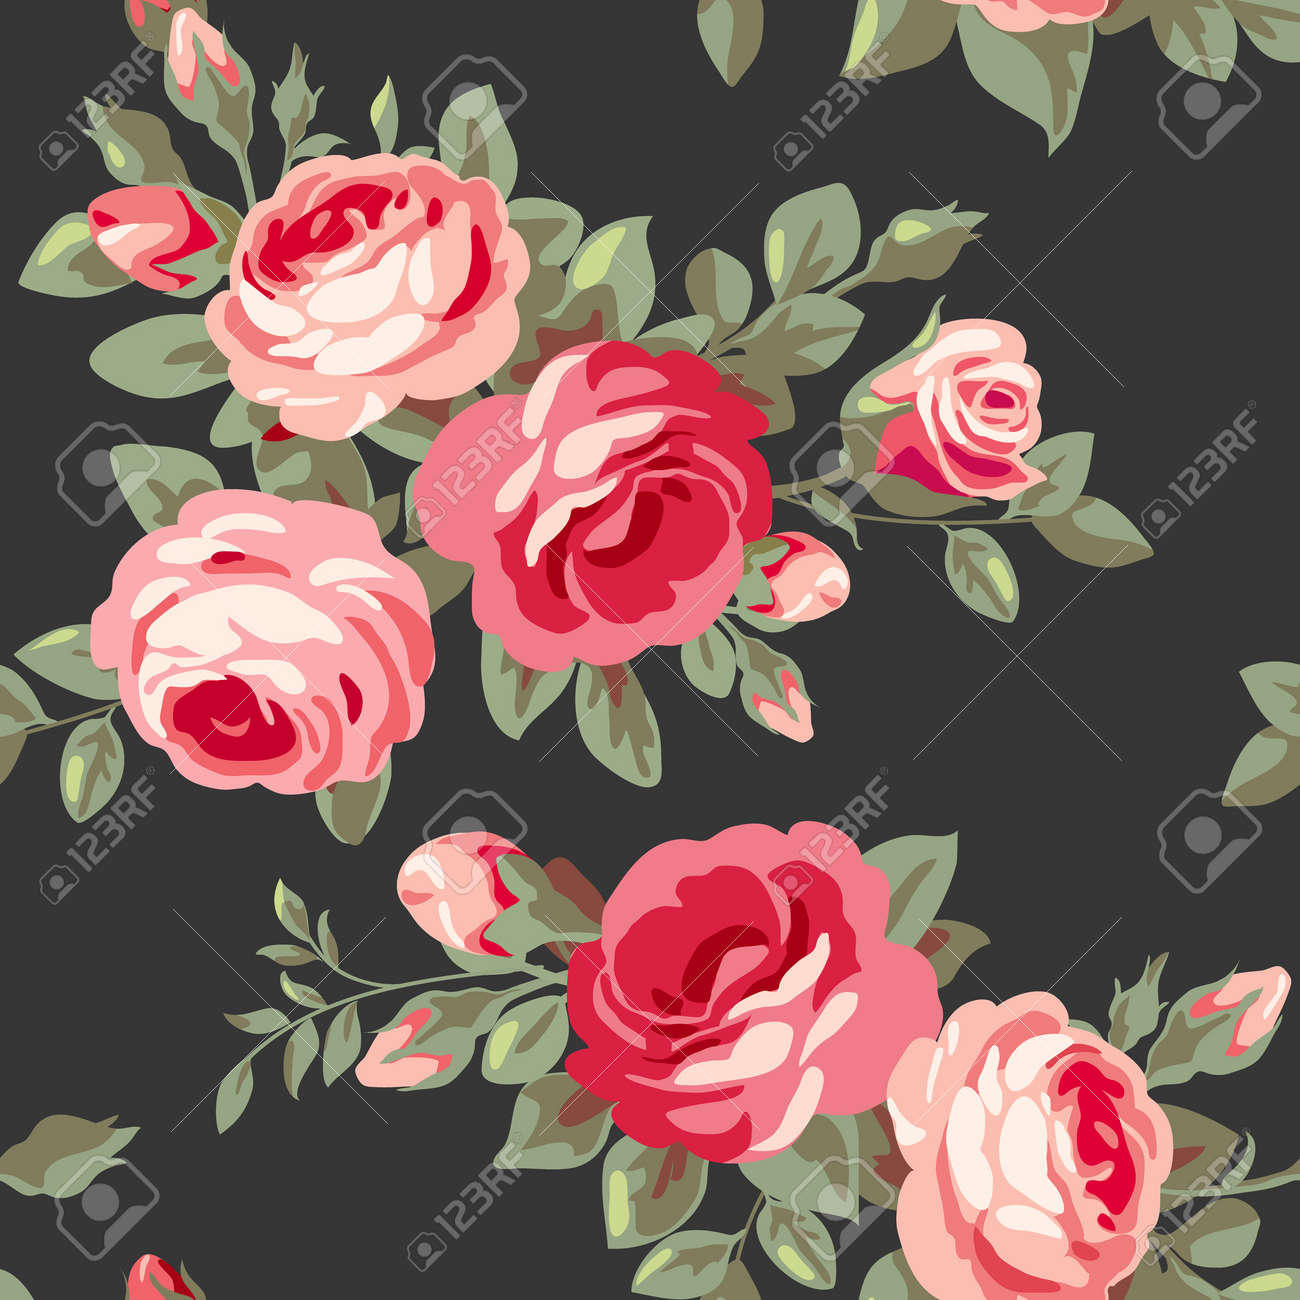 Seamless Pattern With Pink Roses Vintage Floral Wallpaper Blooming Flowers Stock Vector